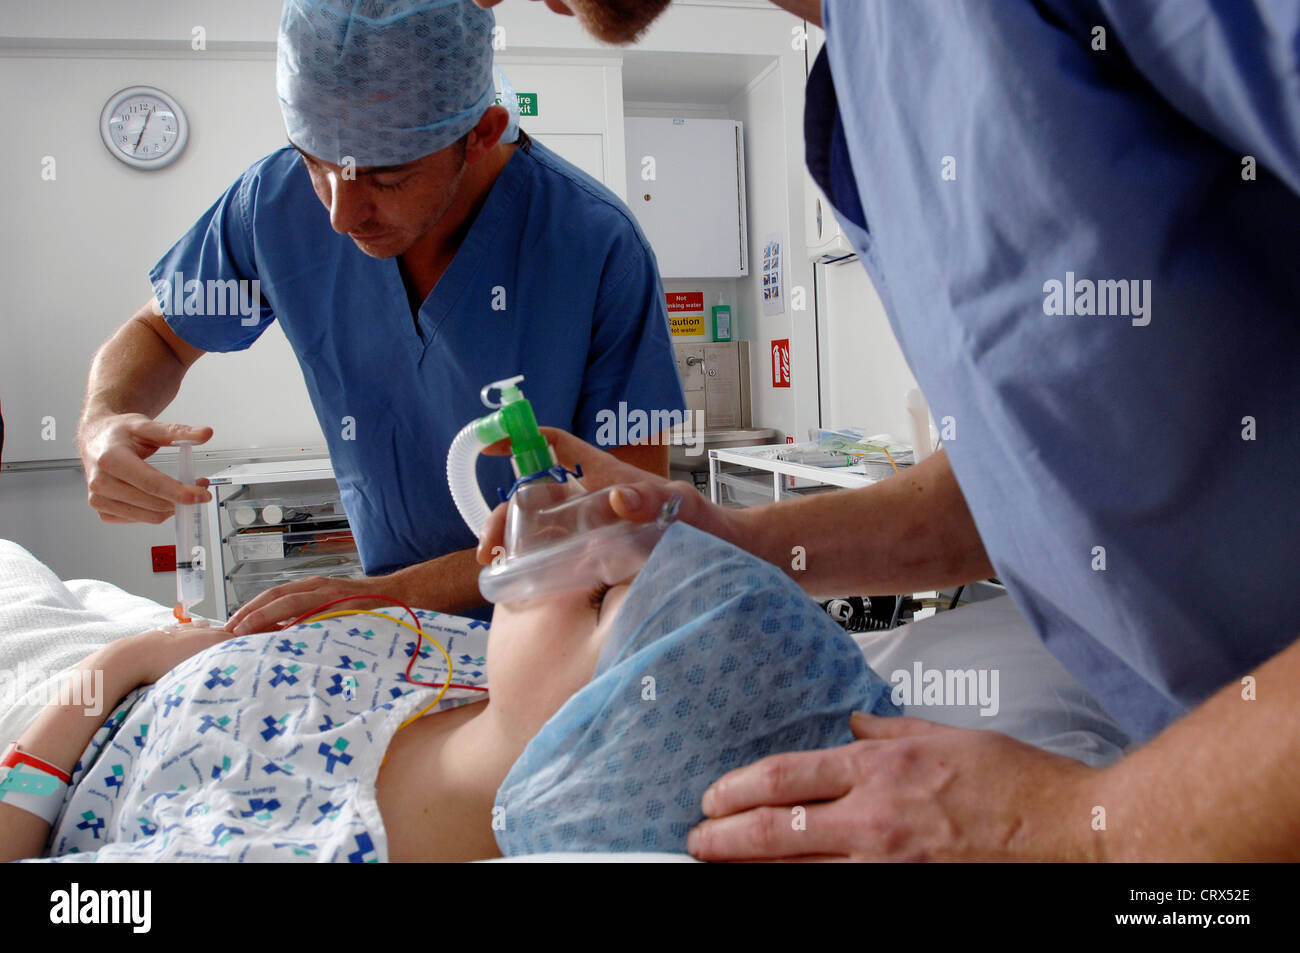 An anaesthetist administering medical gases to induce anaesthesia in a patient. - Stock Image